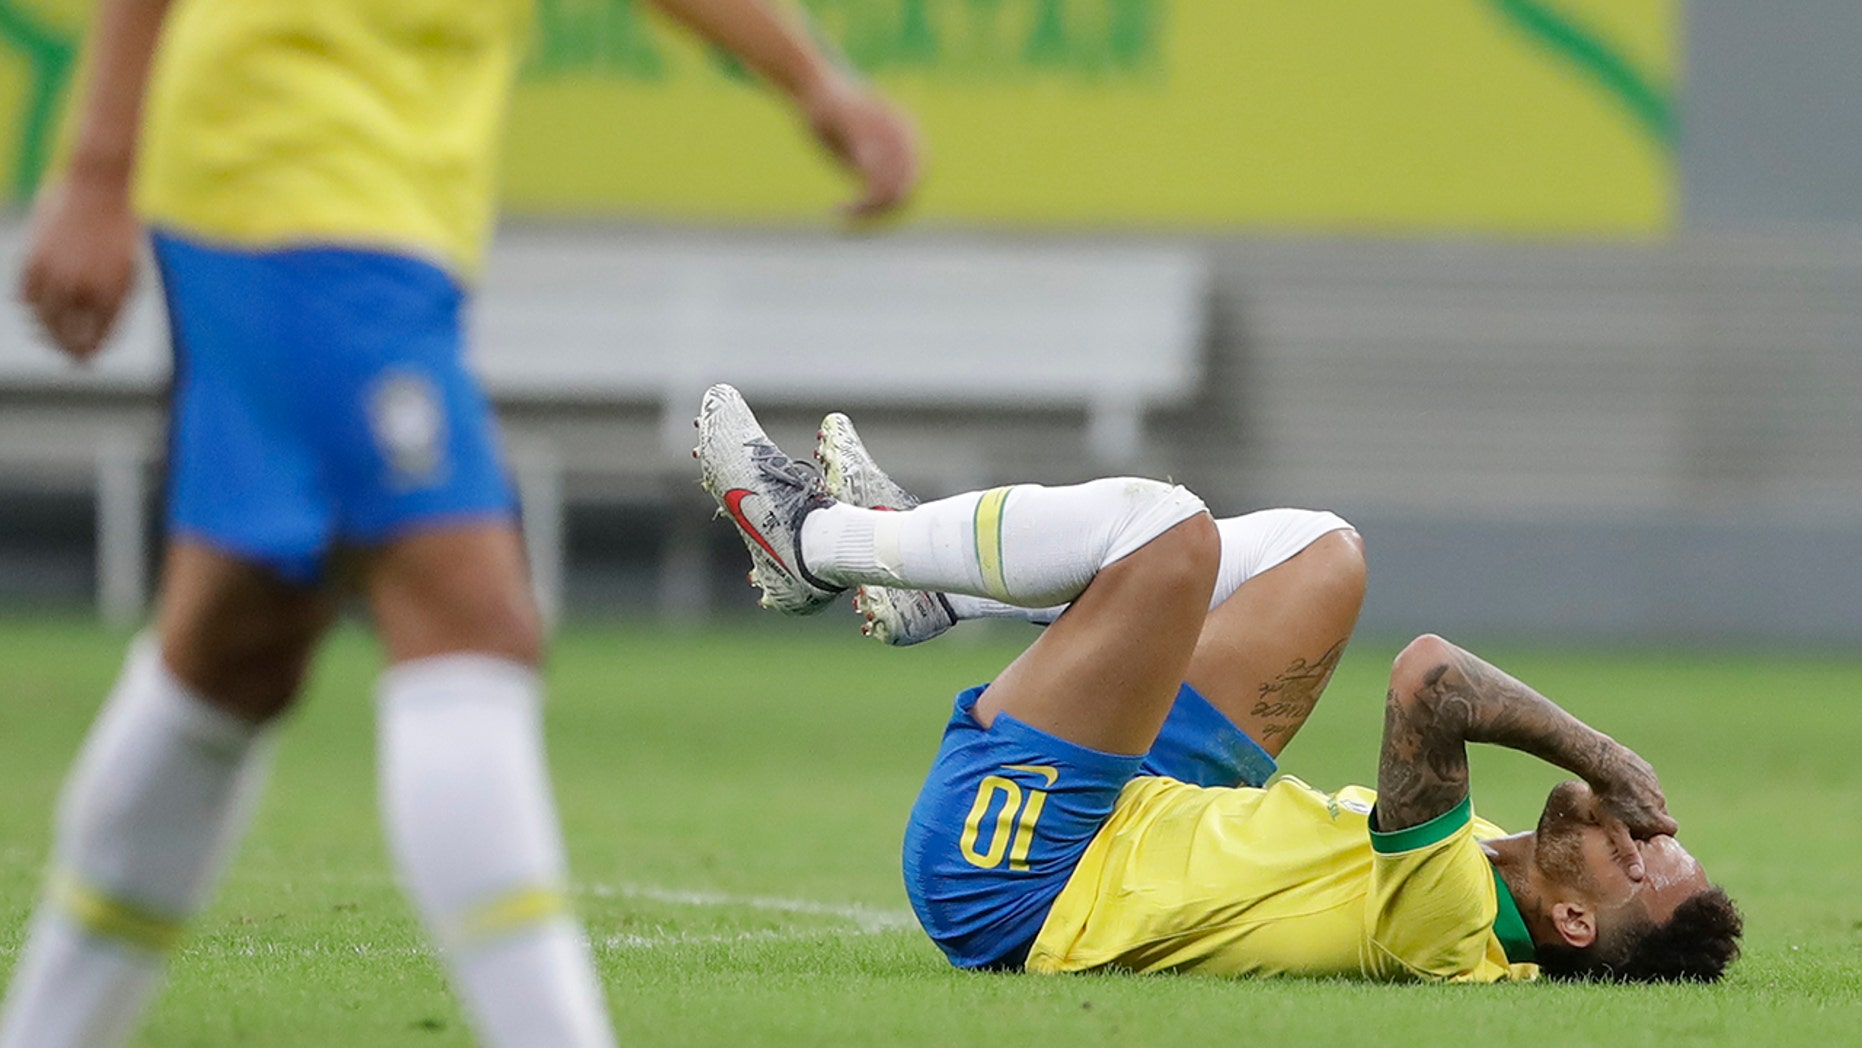 Brazil's Neymar lies on the pitch after being fouled during a friendly soccer match against Qatar at the Estadio Nacional in Brasilia, Brazil, Wednesday, June 5, 2019. Brazil and Qatar are preparing for the Copa America which runs from June 14 until July 7 in Brazil. (AP Photo/Andre Penner)